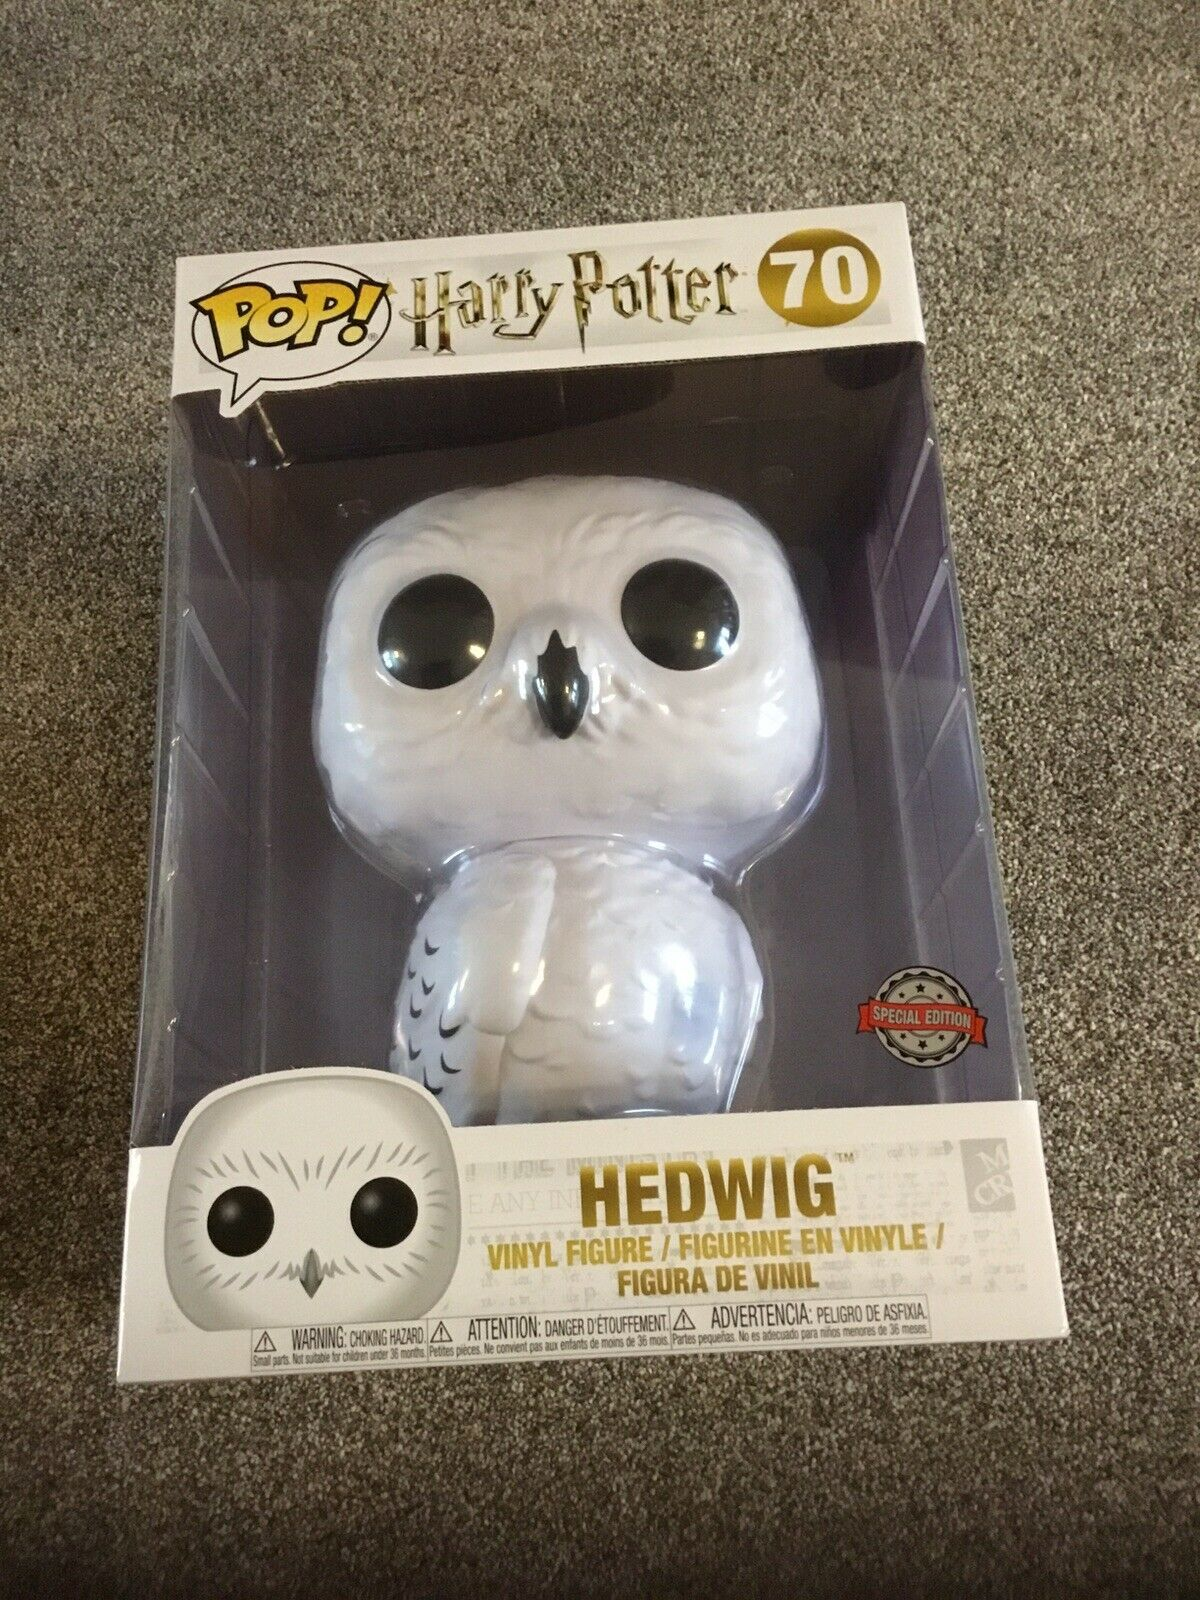 Harry Potter divertiessitoko Pop Edvige cifra 70 grei cifra NUOVO